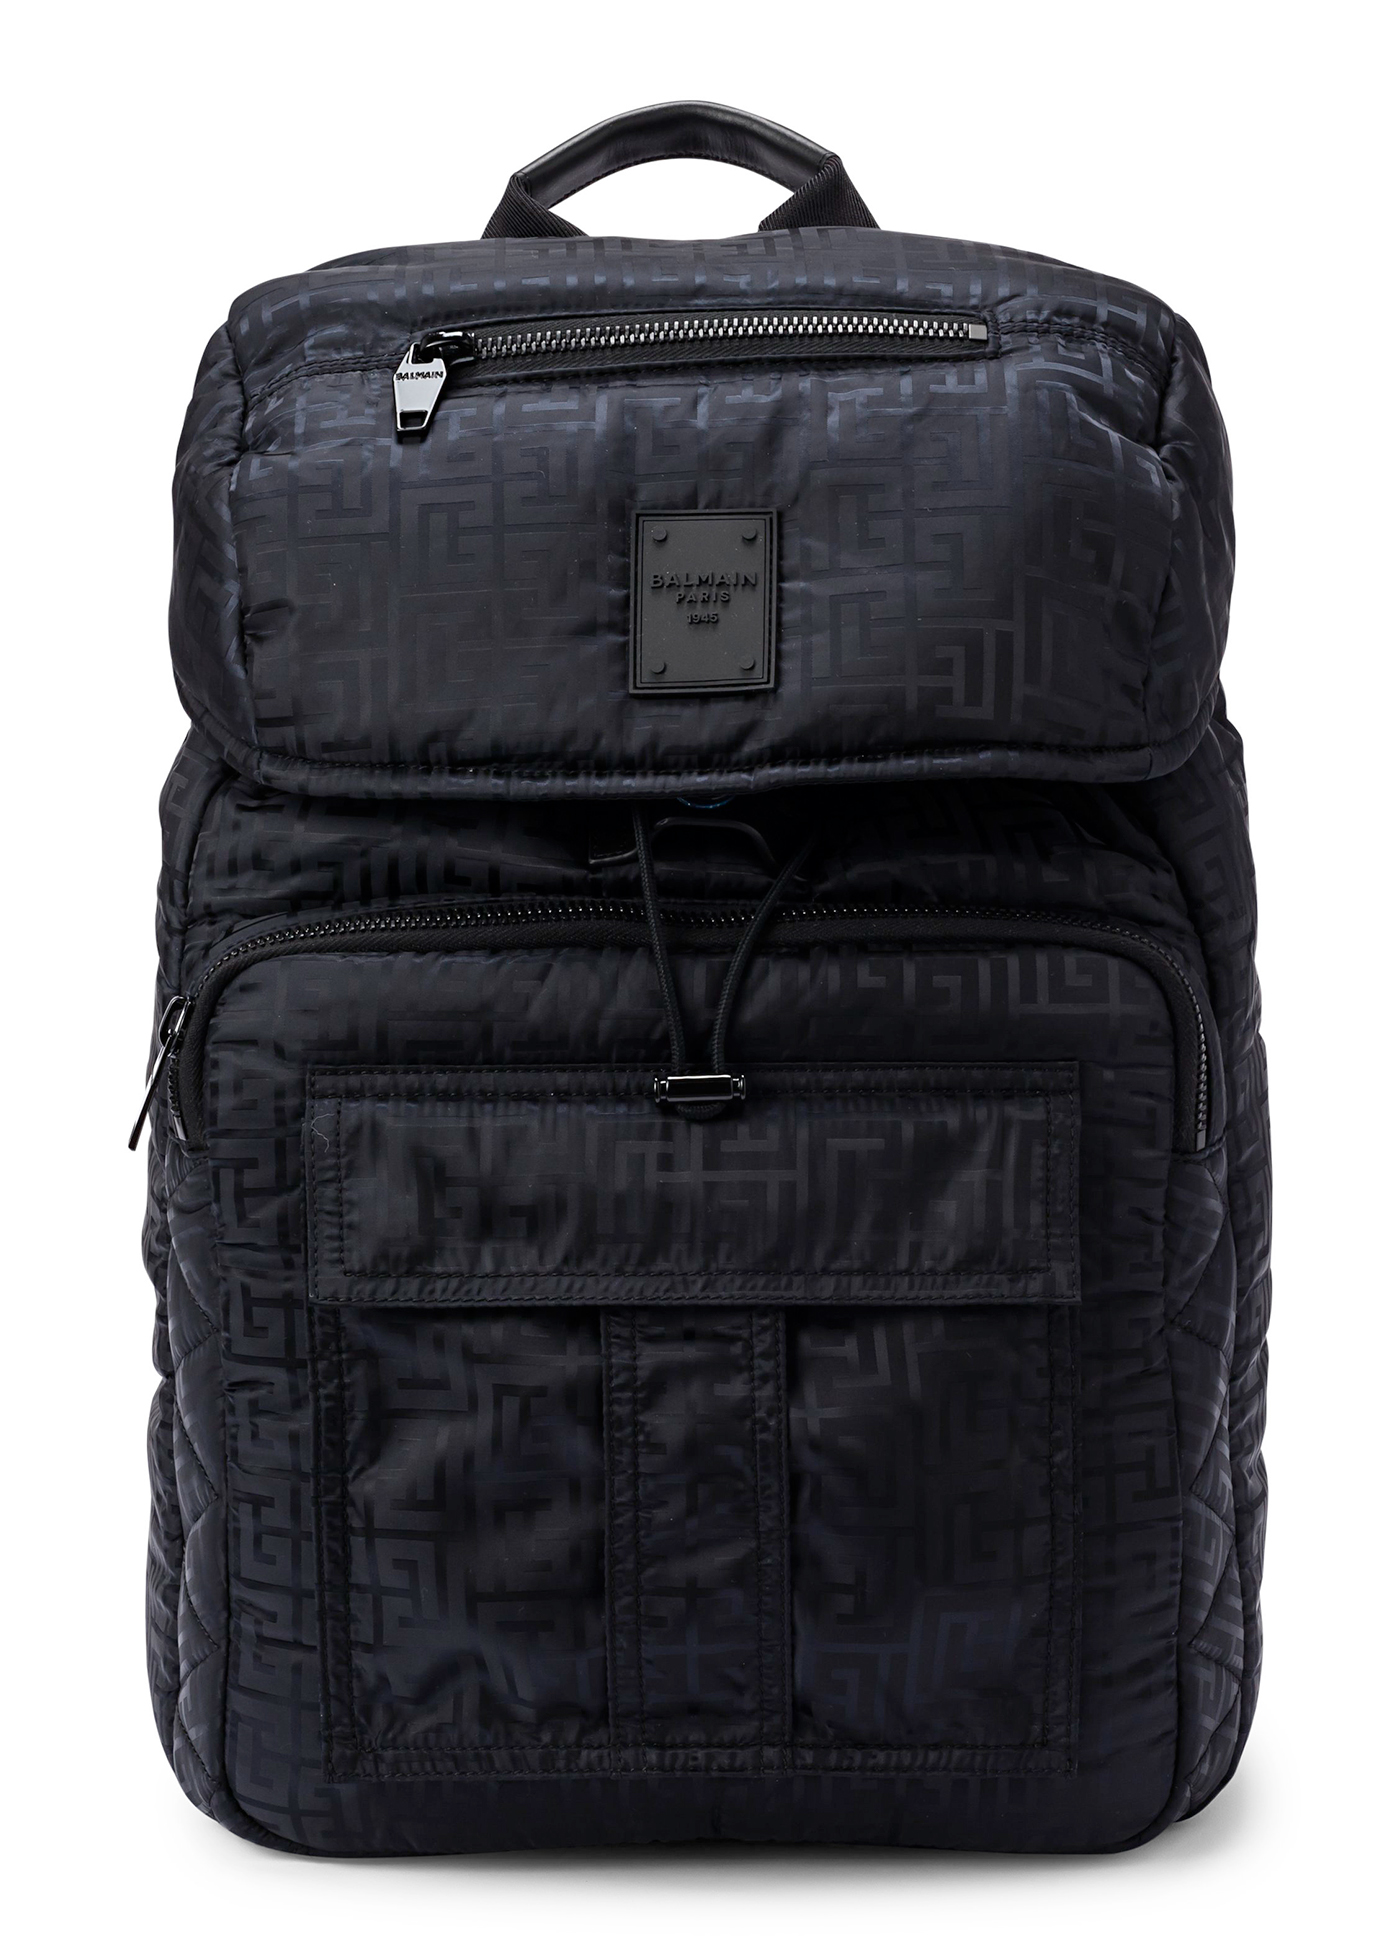 LEAGUE BACKPACK 32-NYLON MONOGRAMME image number 0